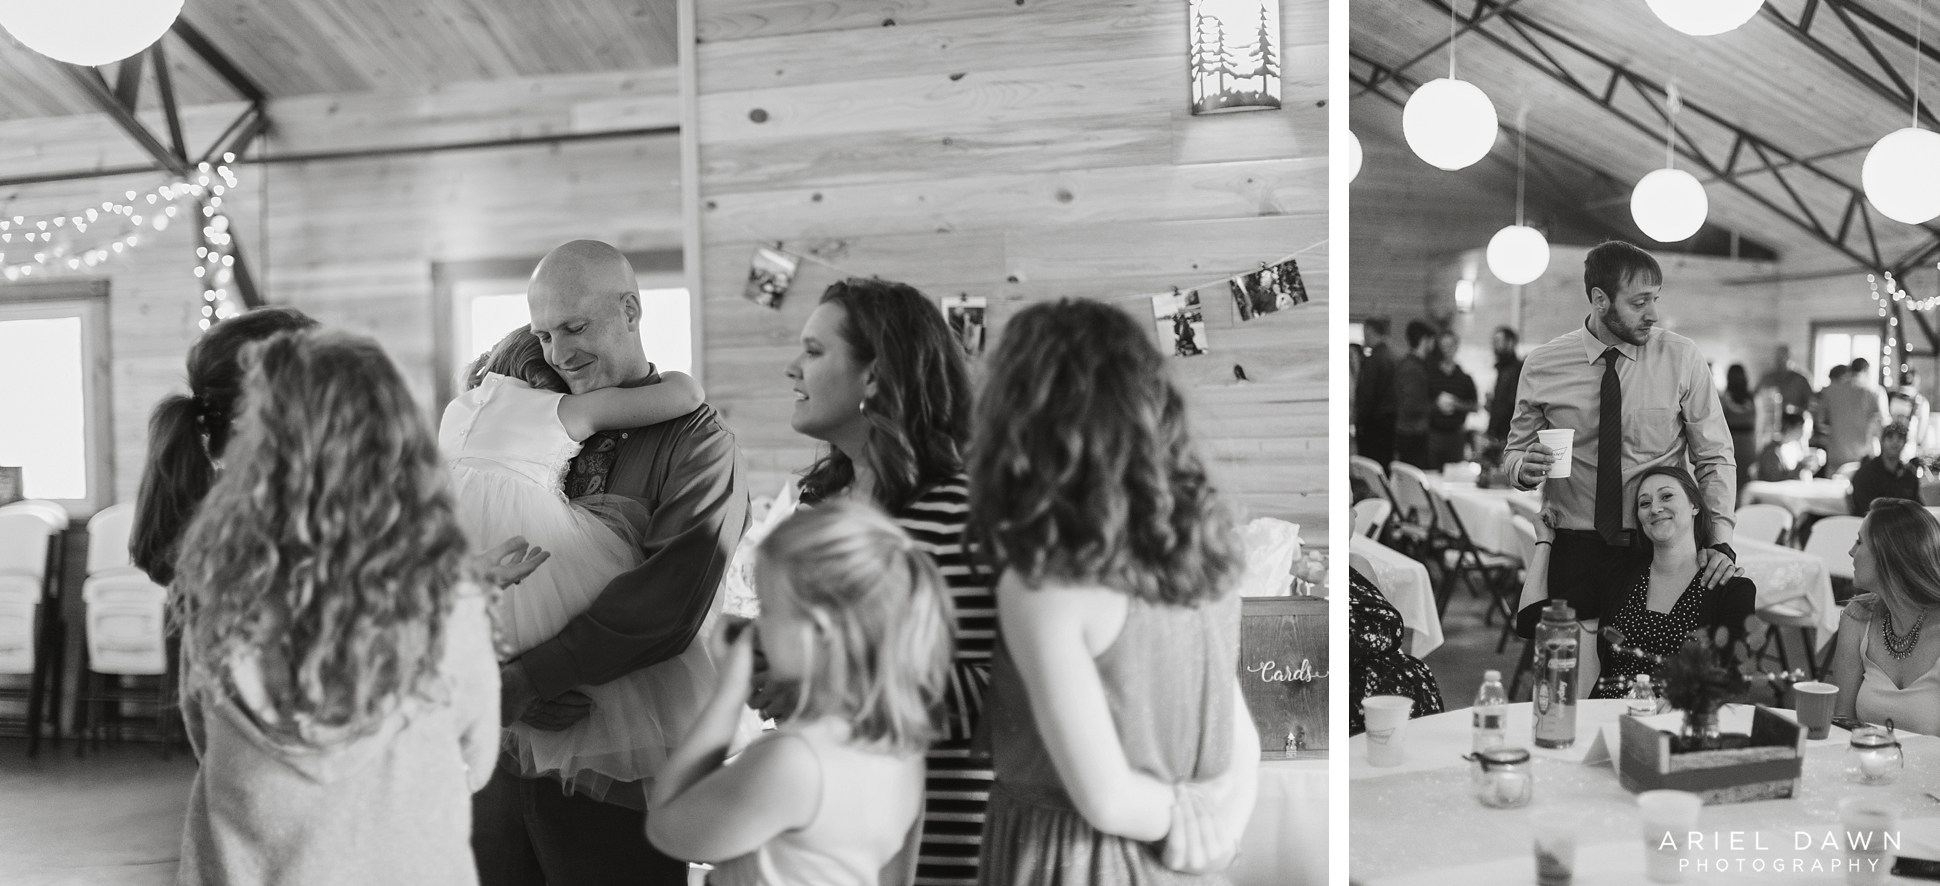 Wedding Photographer Bend, Oregon 2018